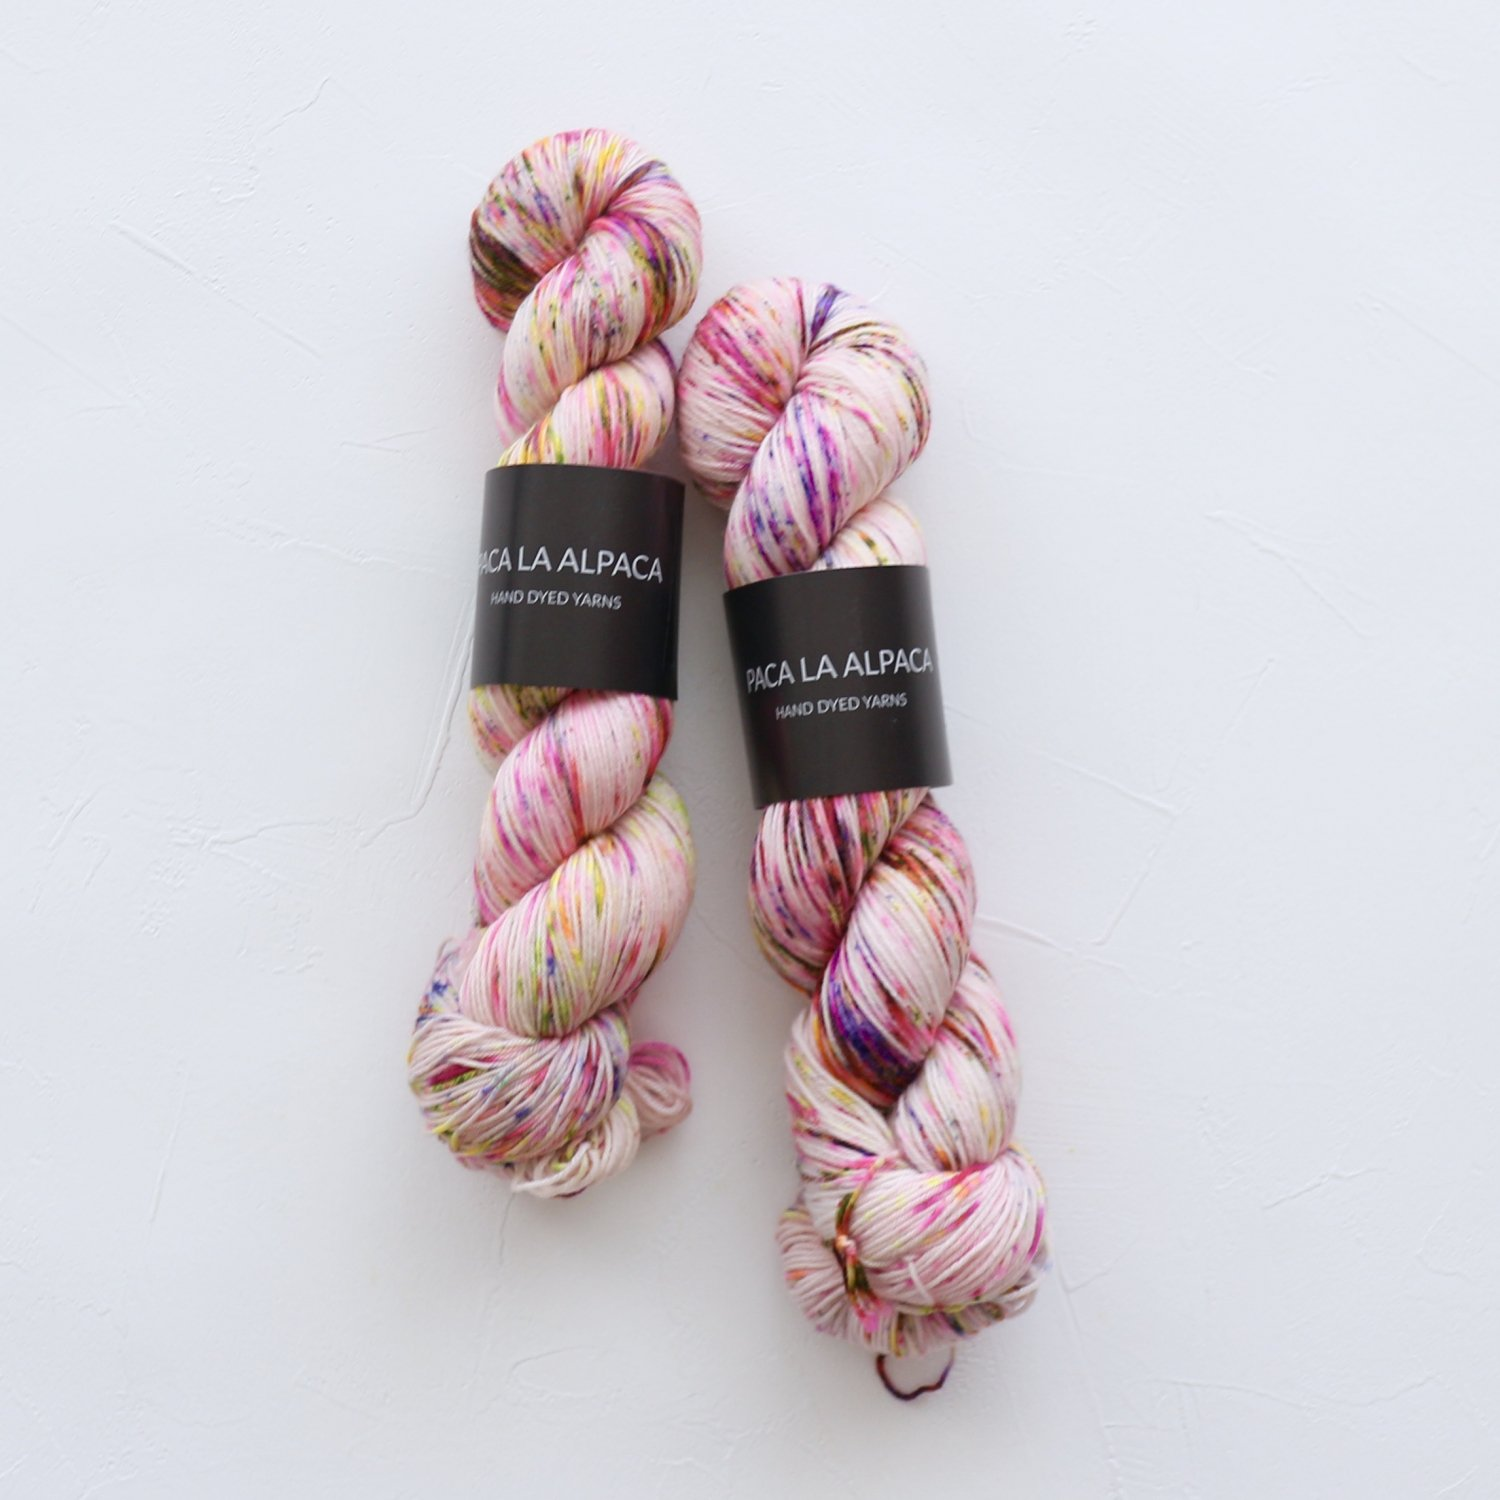 【Paca La Alpaca】<br>Superwash Merino Sock 4Ply<br>Wild Hairspray